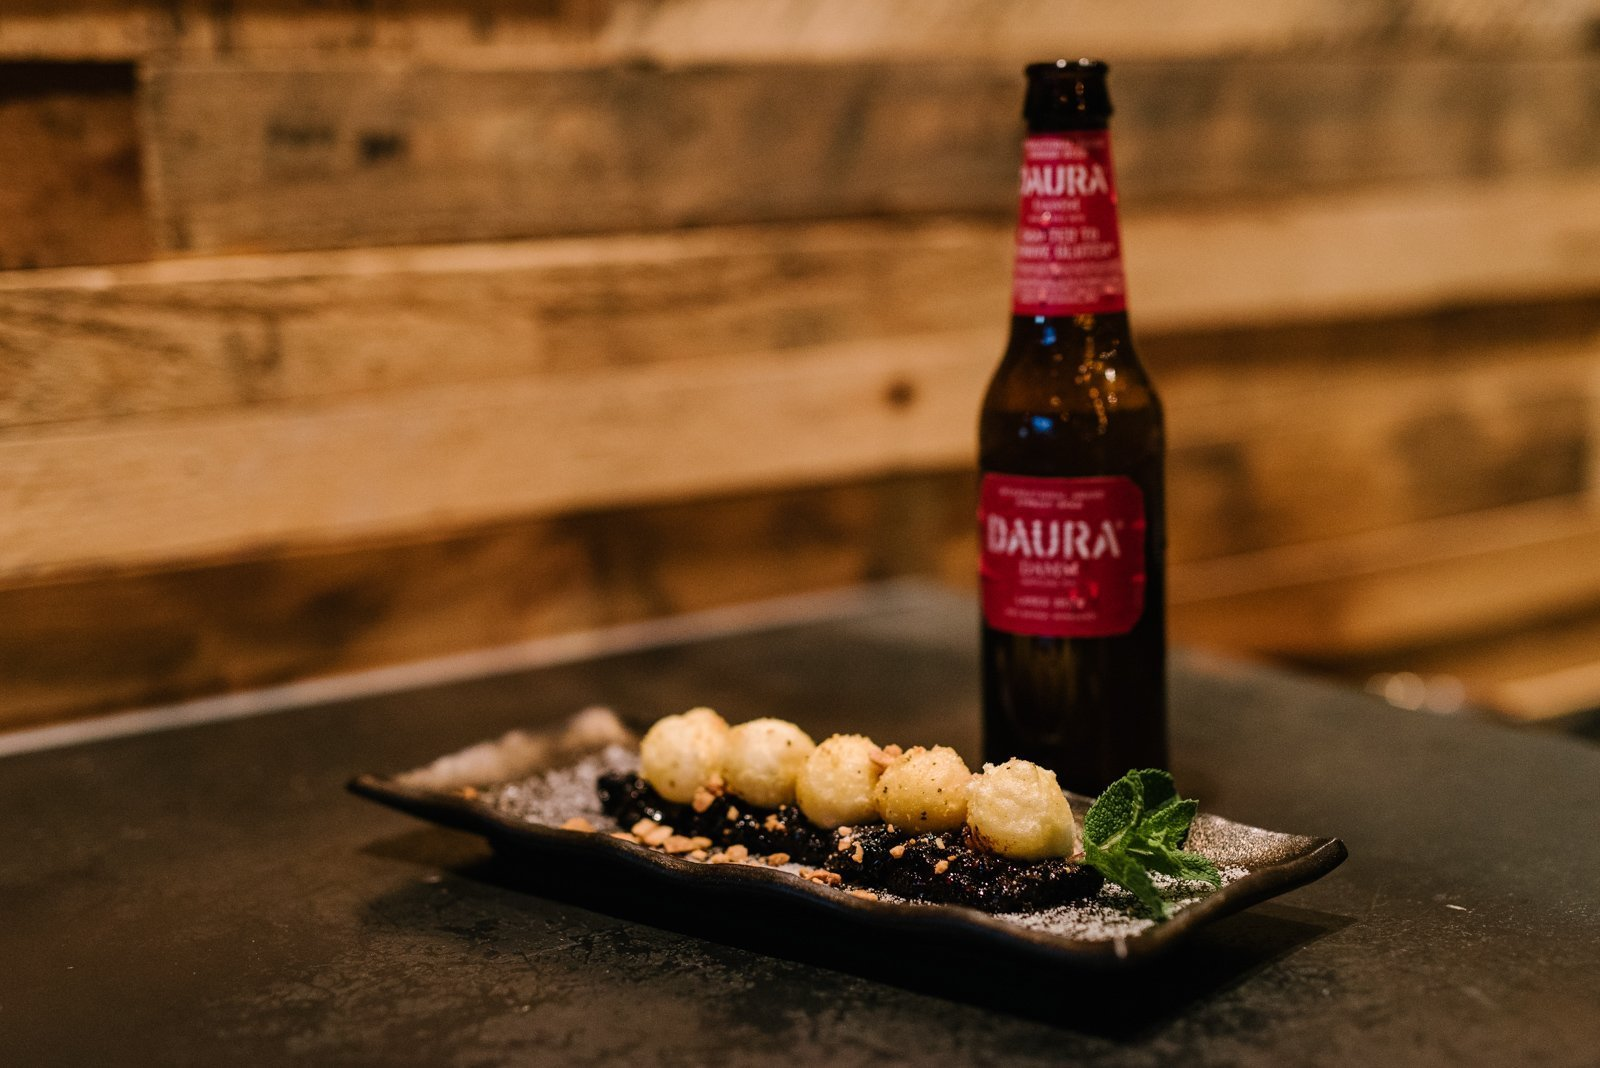 Bottle of Daura Damm with Let Your Backbone Slide (sesame mochi) at Kanpai Snack Bar in Toronto